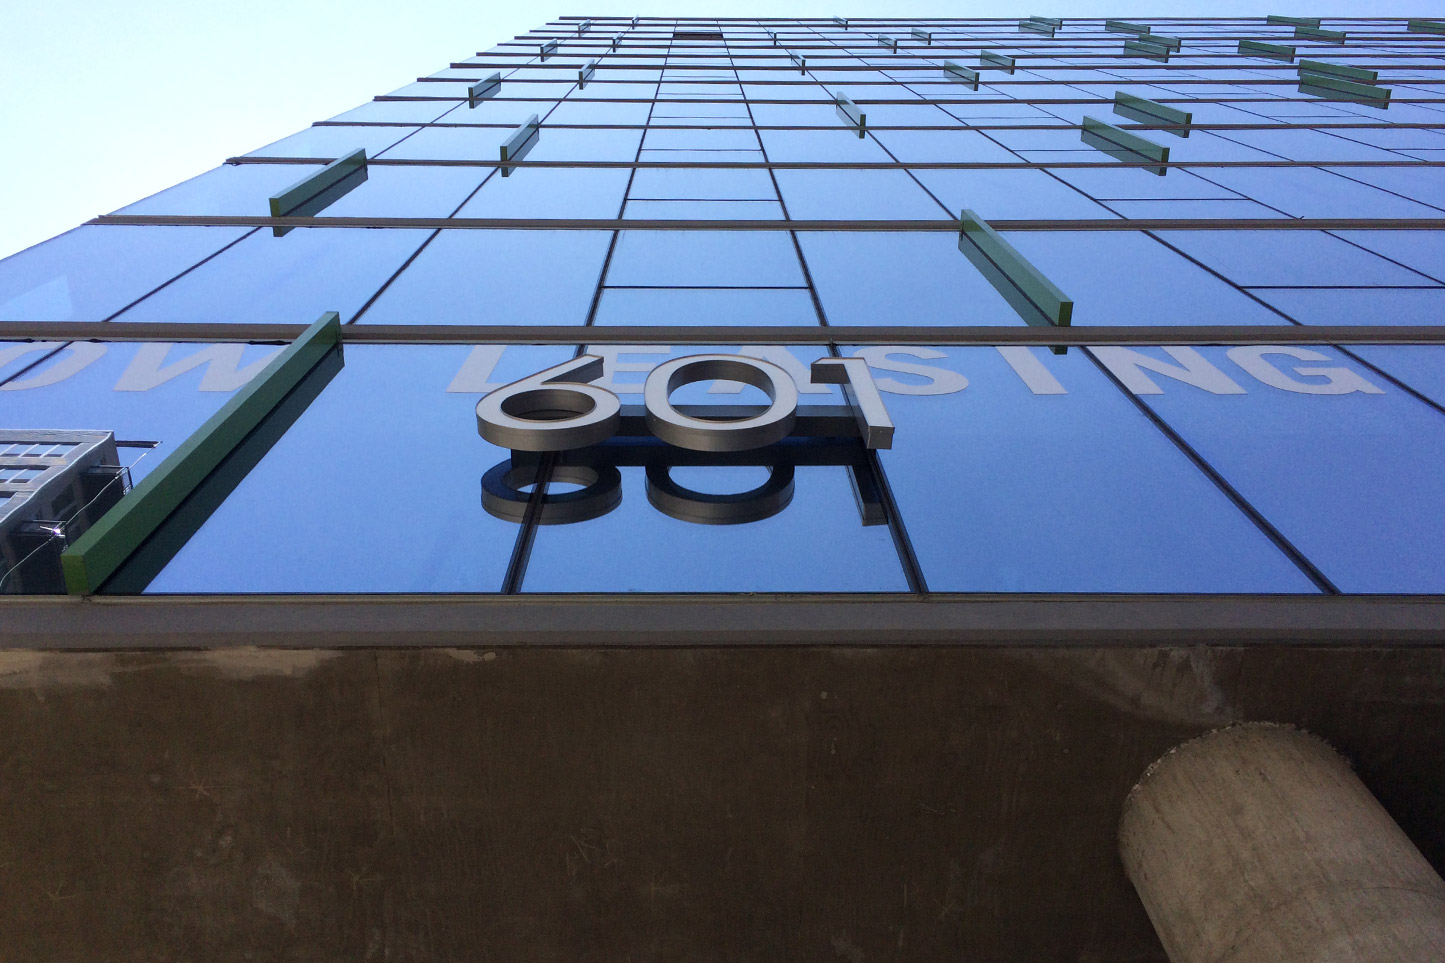 Close-up at street level of JeffJack Apartments' building and its number, 601